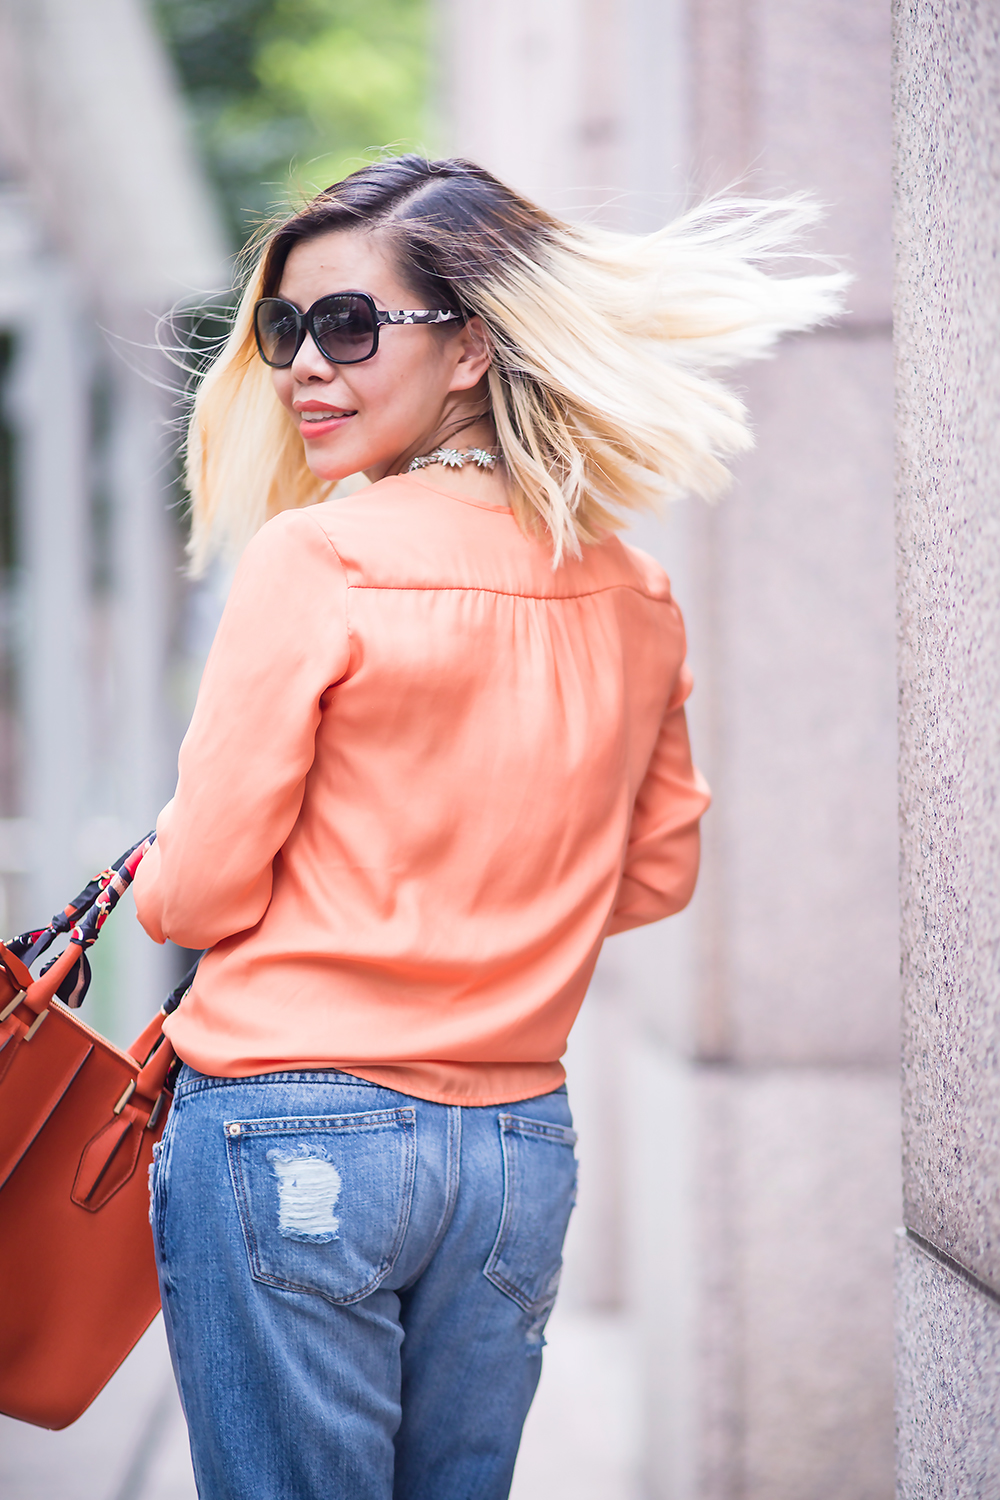 CrystalPhuong- Singapore Fashion Blog- Boyfriend jeans weekend